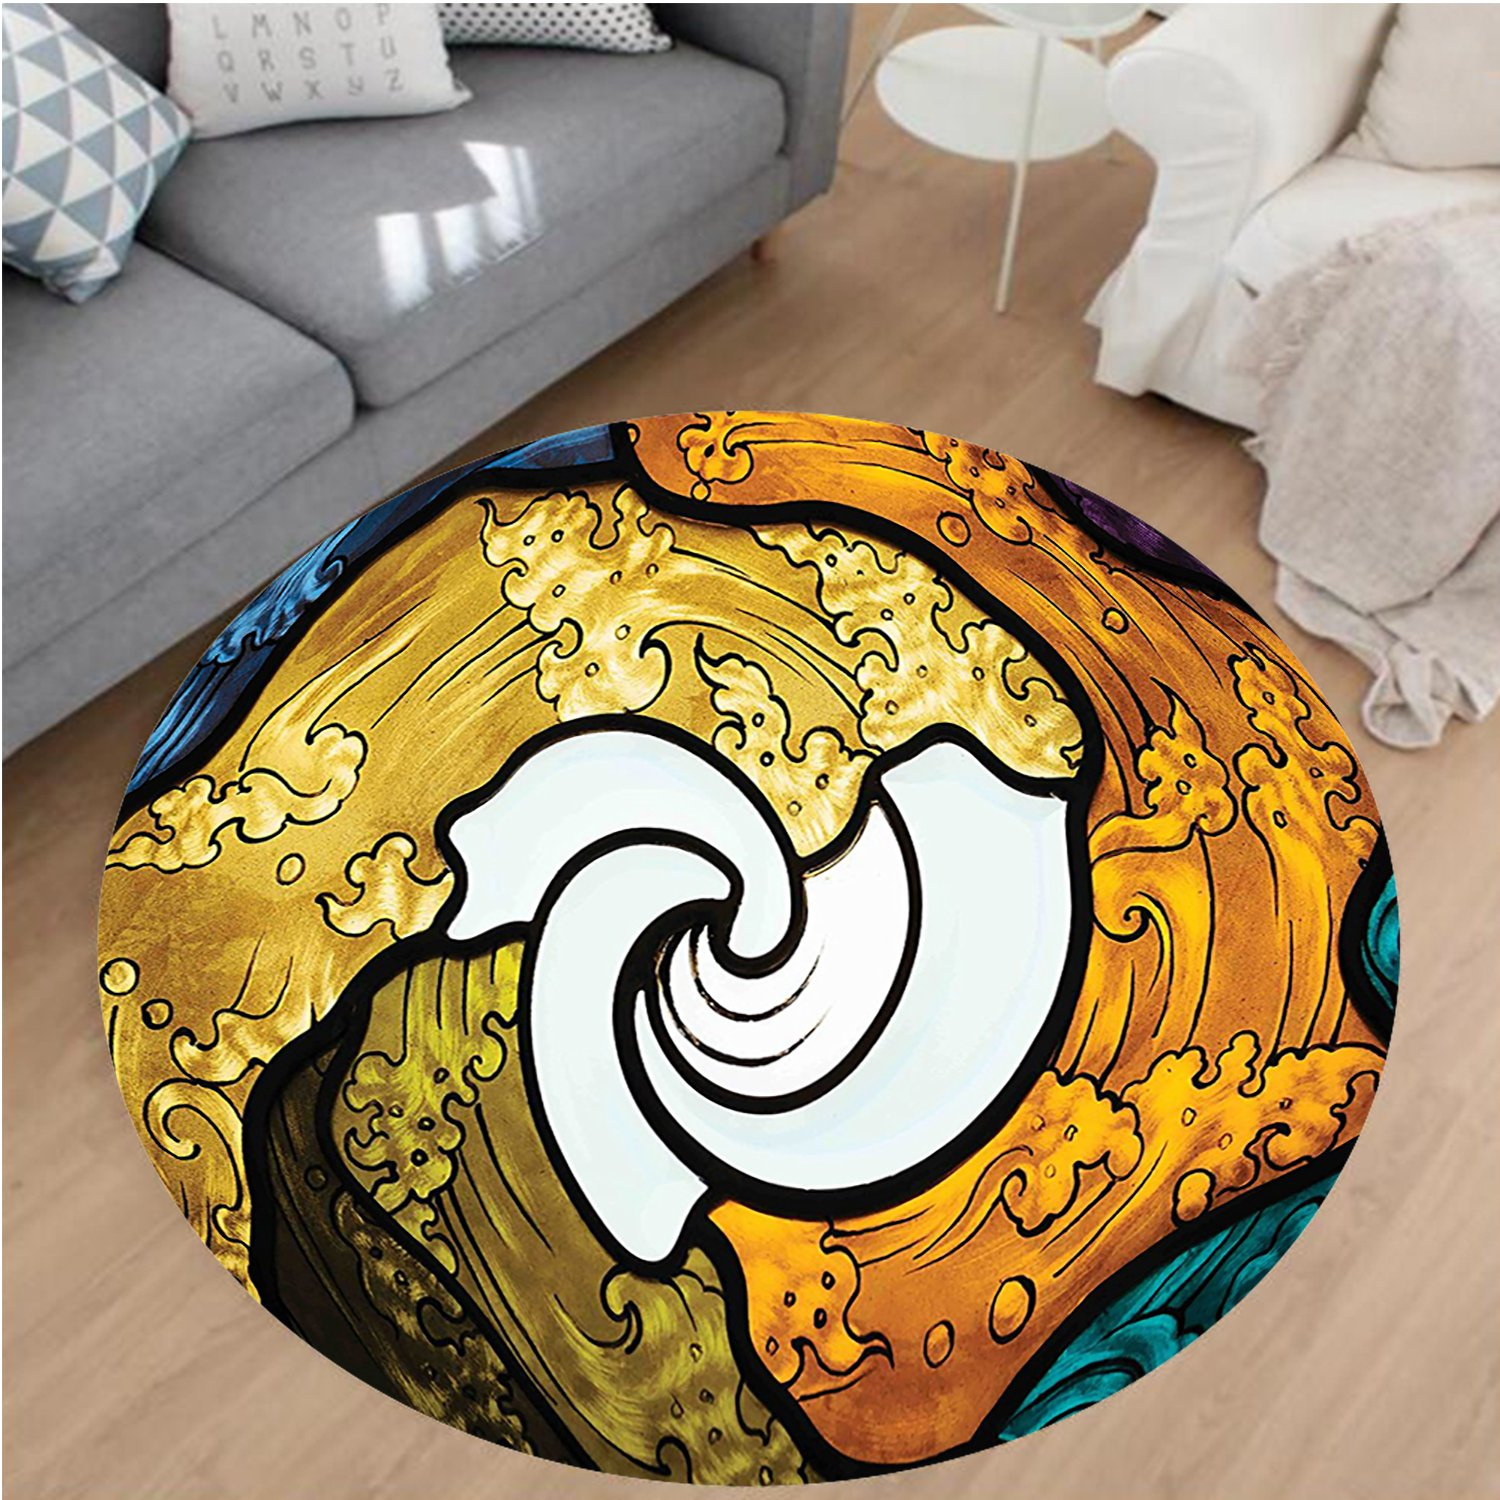 Nalahome Modern Flannel Microfiber Non-Slip Machine Washable Round Area Rug-Pop Art Style Funky Unusual Stained Glass Window Thai Art Pattern Traditional Image Multi area rugs Home Decor-Round 75'' by Nalahome